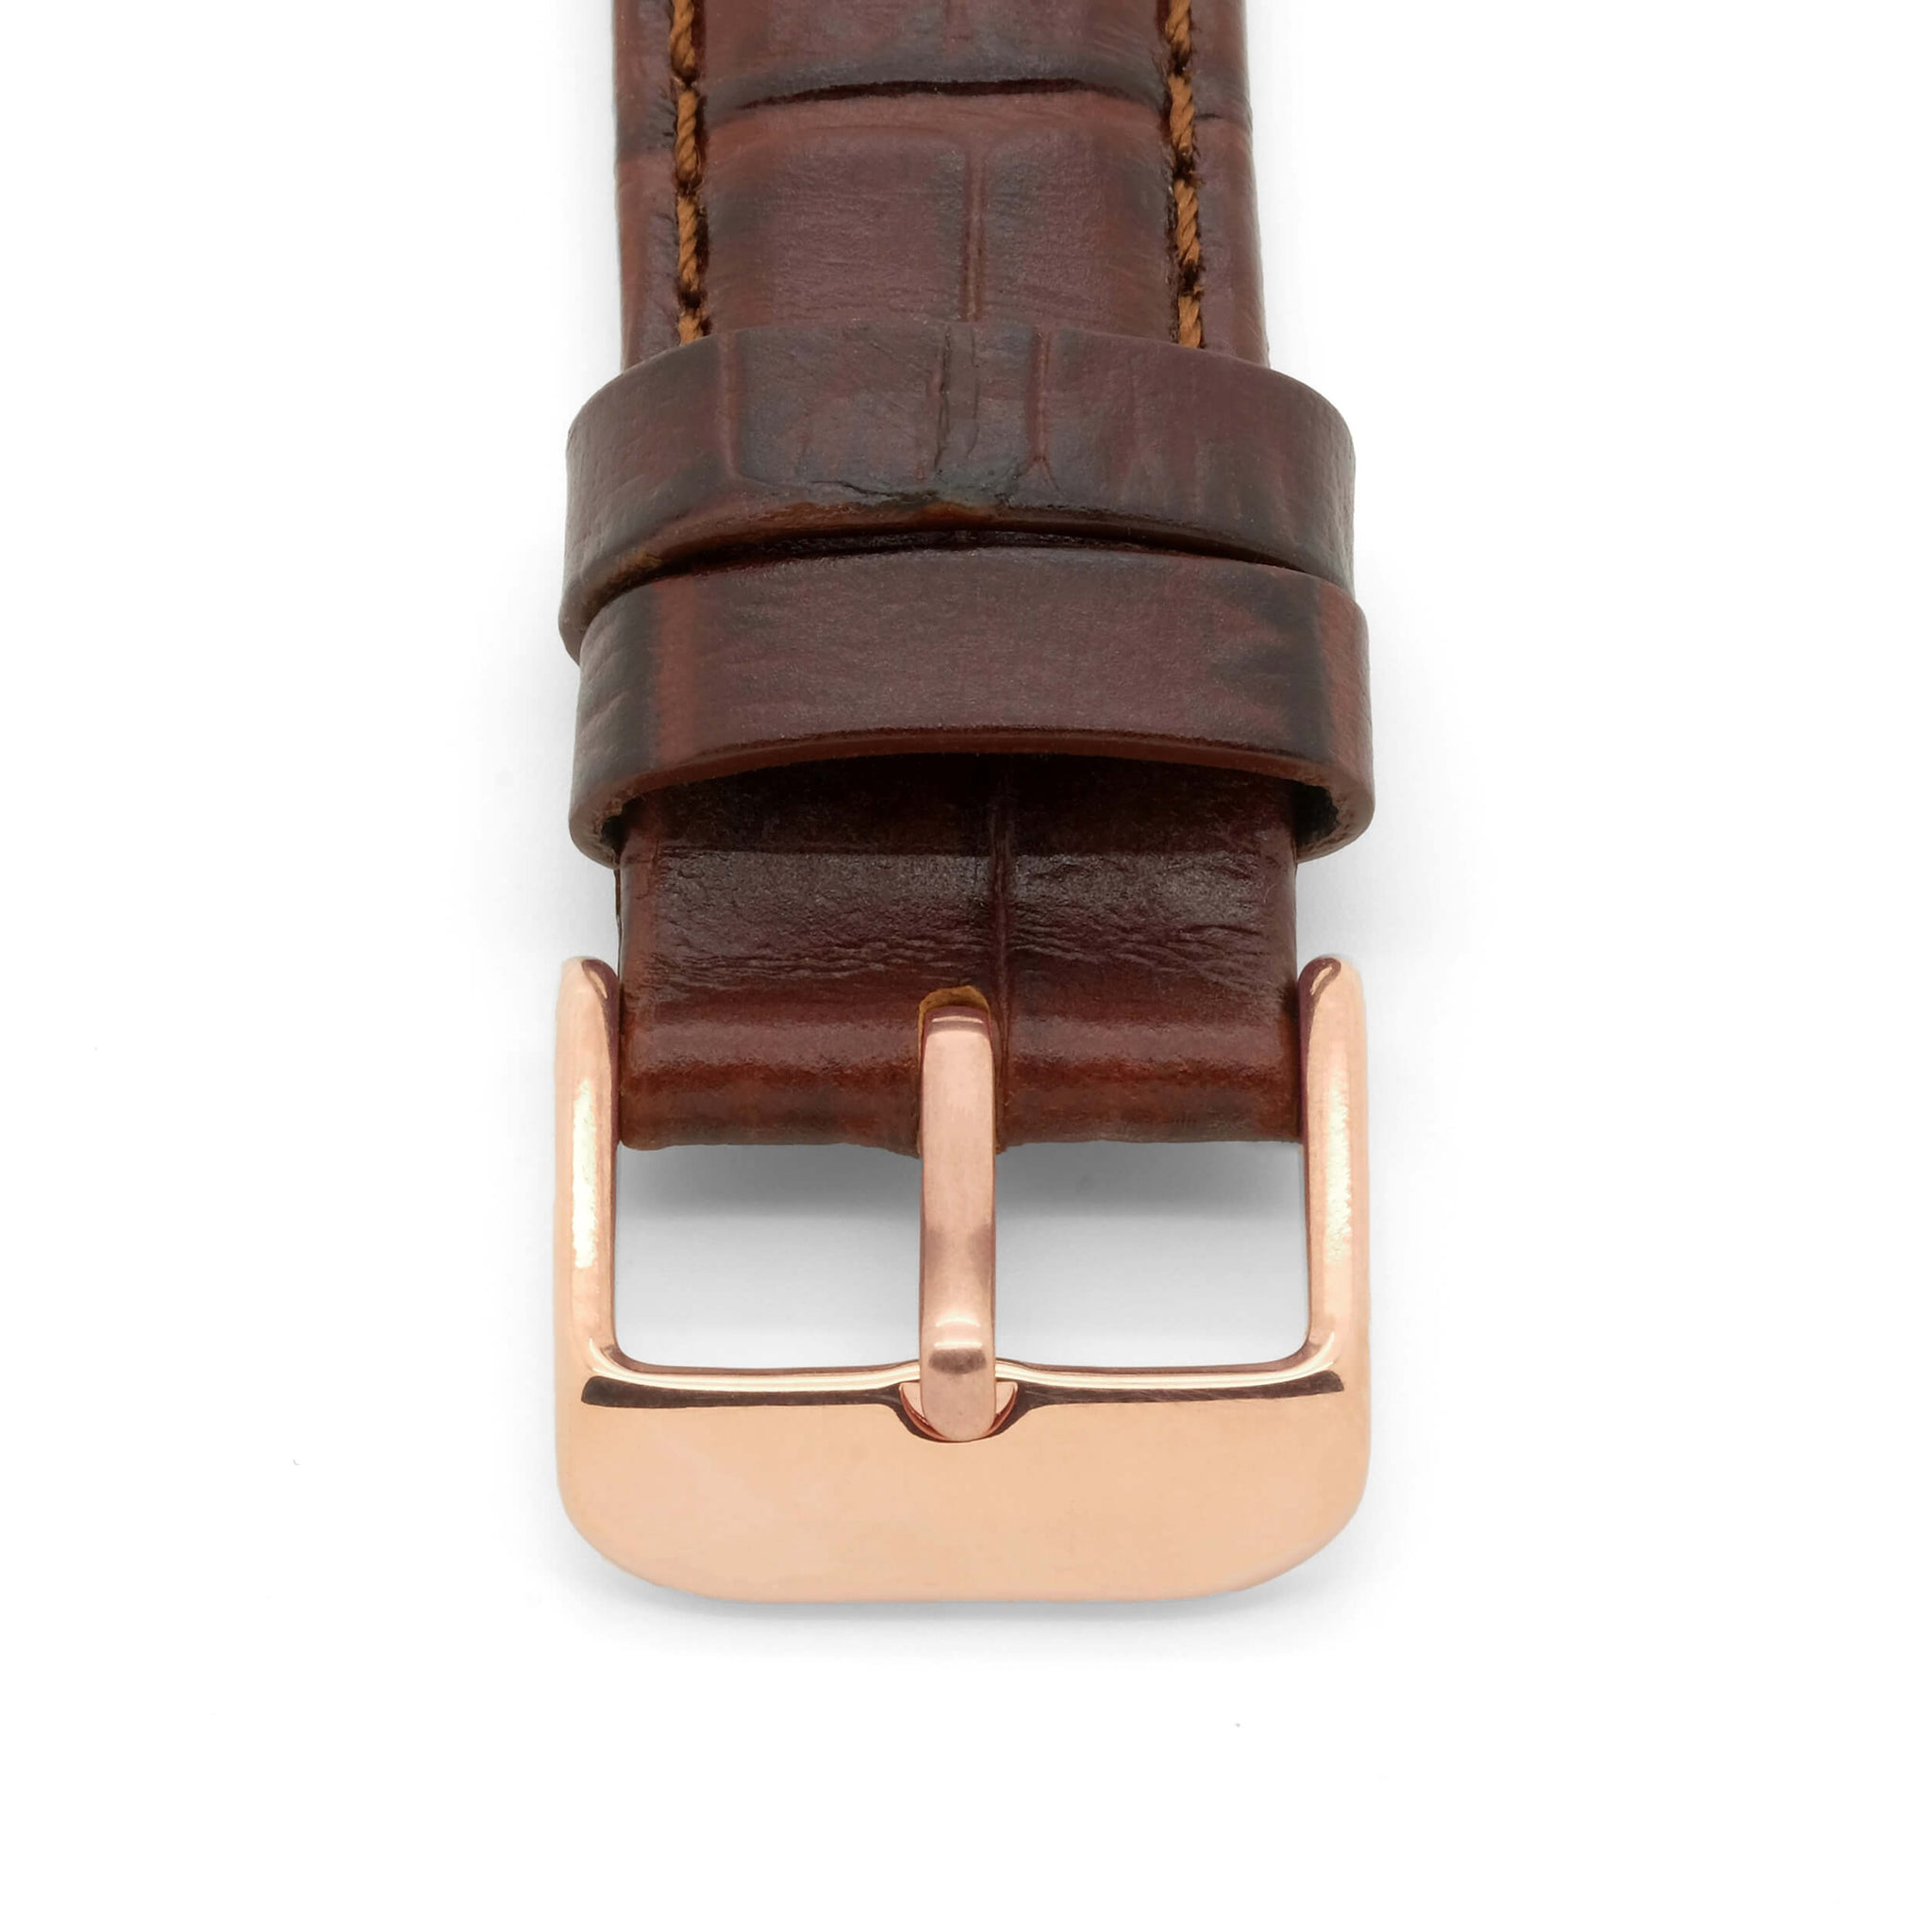 Polished Rose Gold Watch Strap Buckle